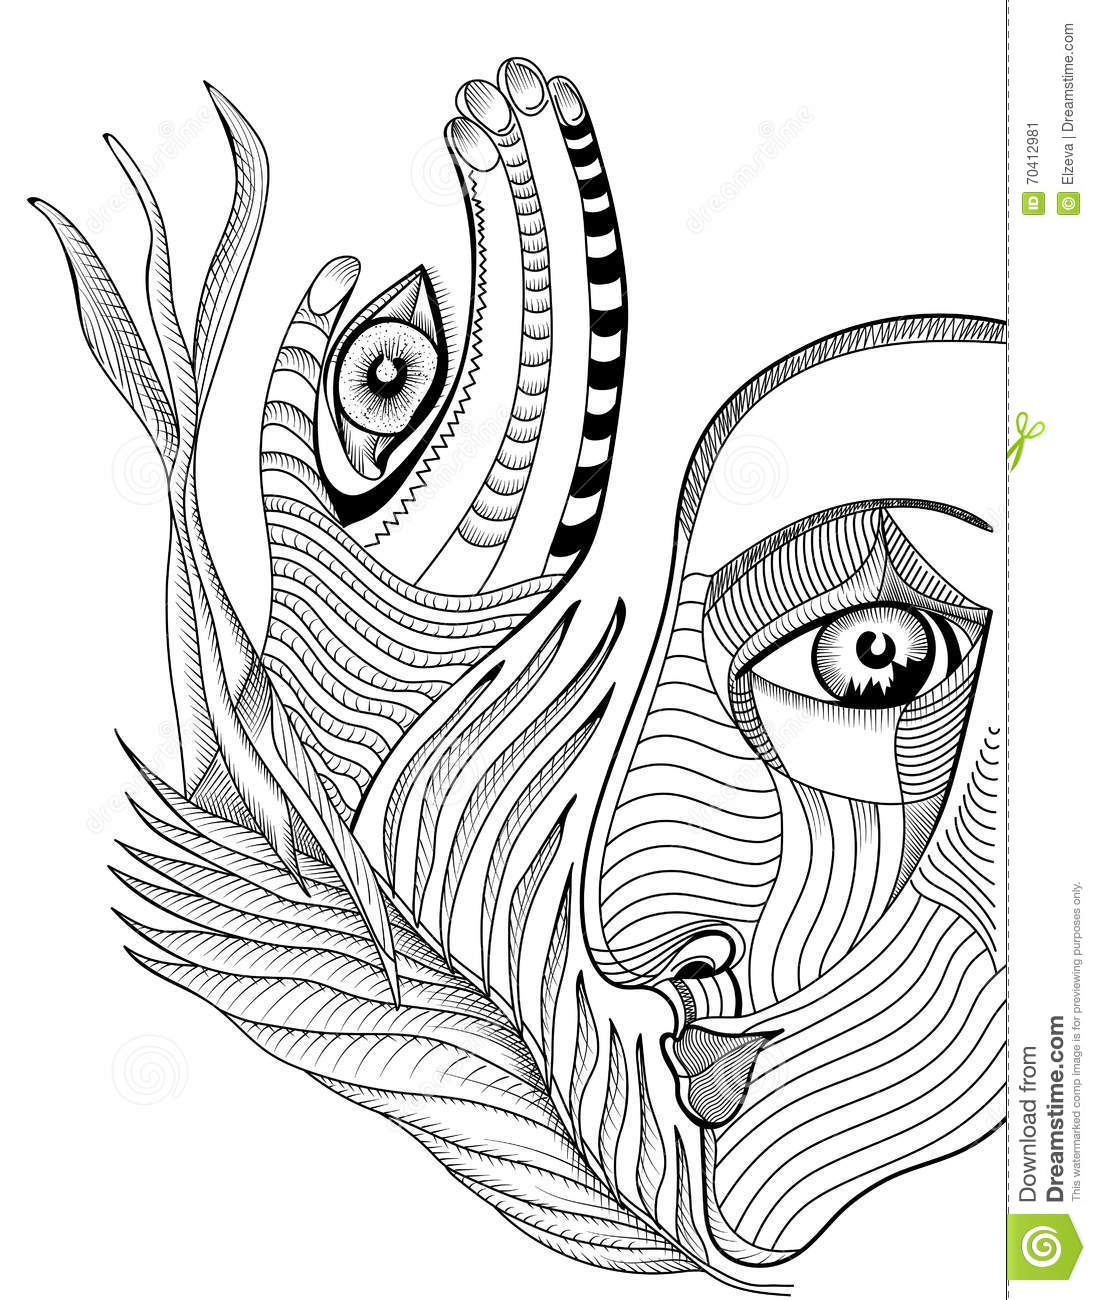 Drawing Lines Using Svg : Abstract surreal face and hand with mehndi tattoo stock